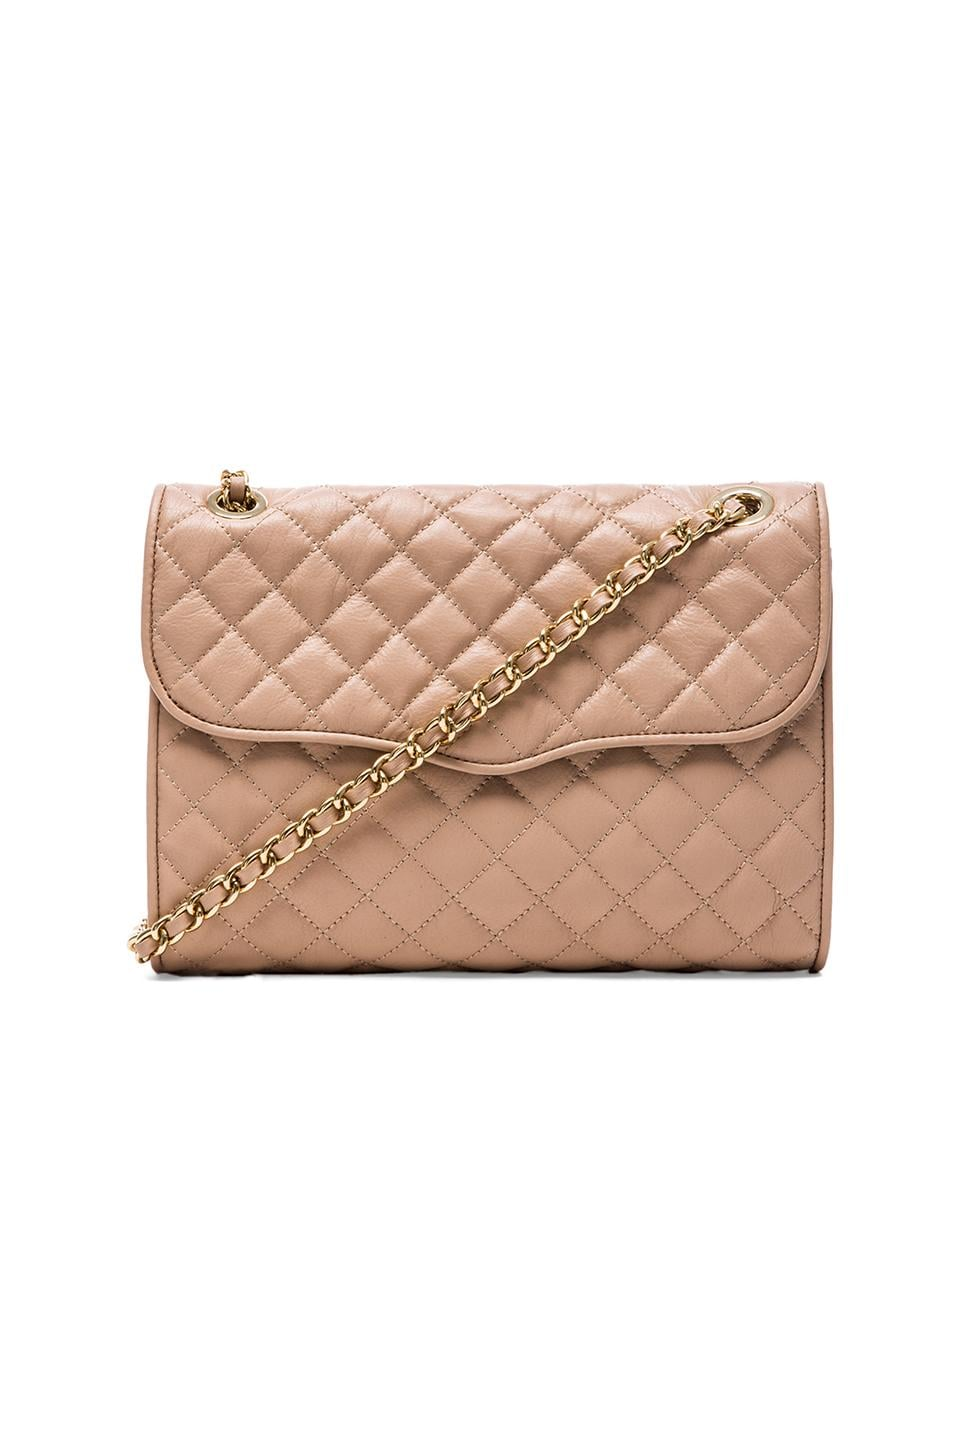 Rebecca Minkoff Quilted Affair in Latte